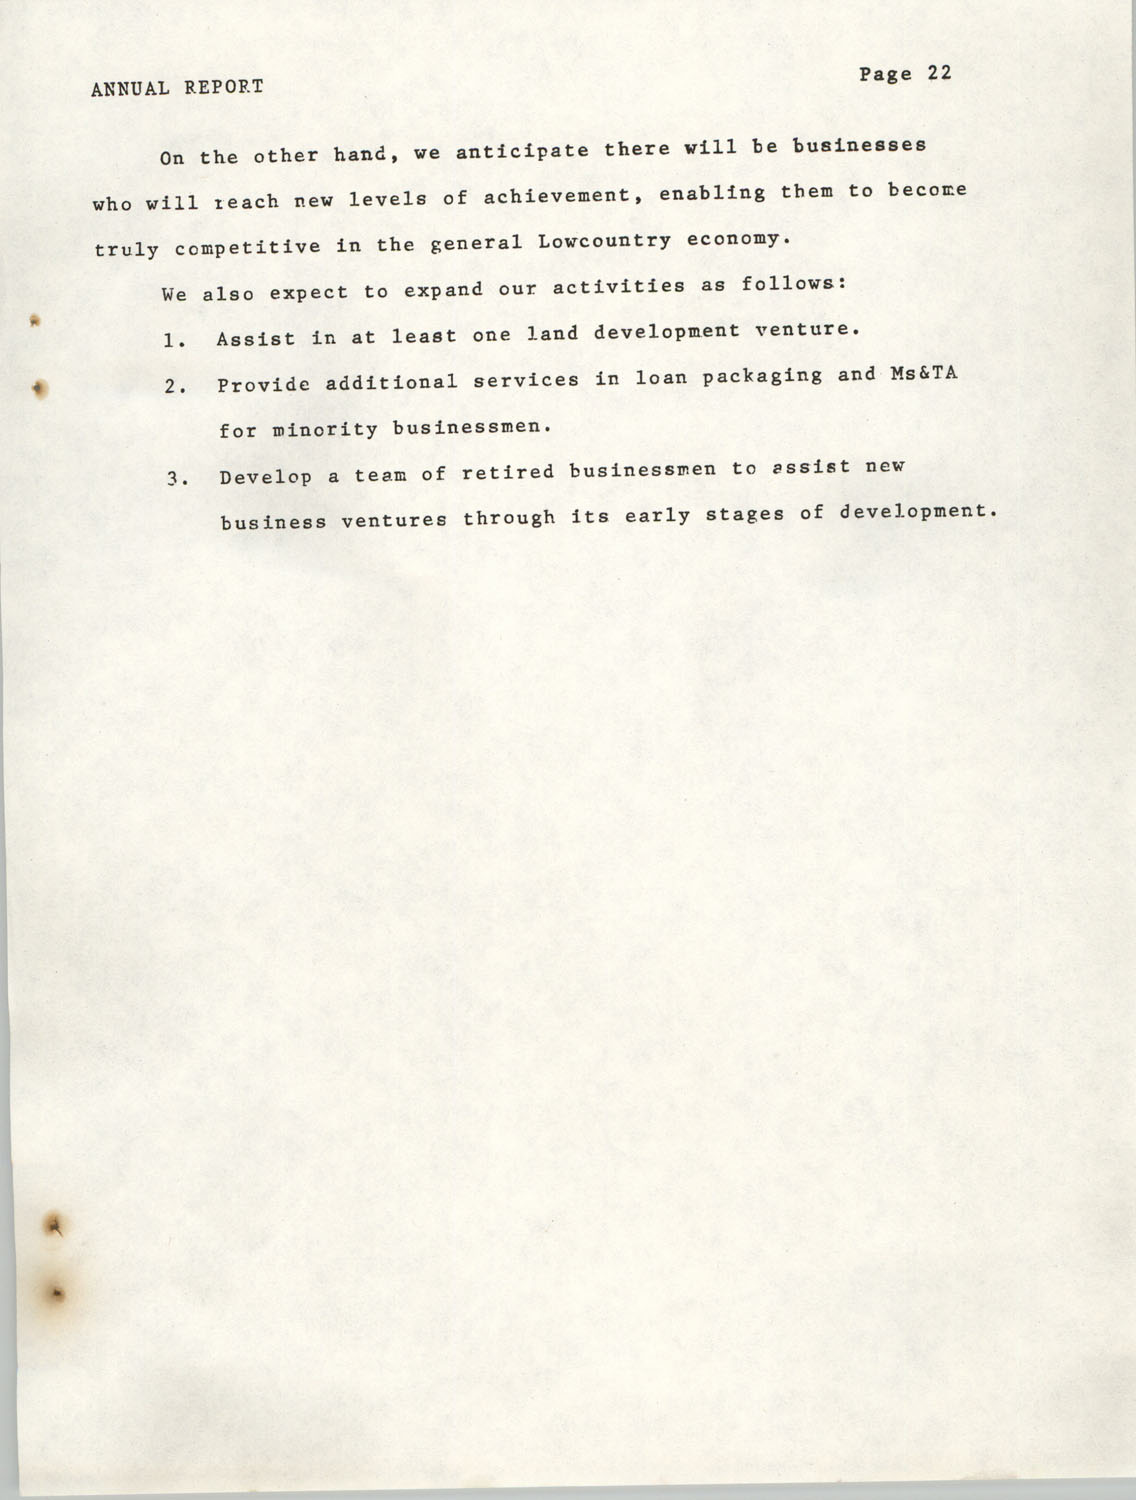 Annual Report, Penn Community Services, 1974, Page 22